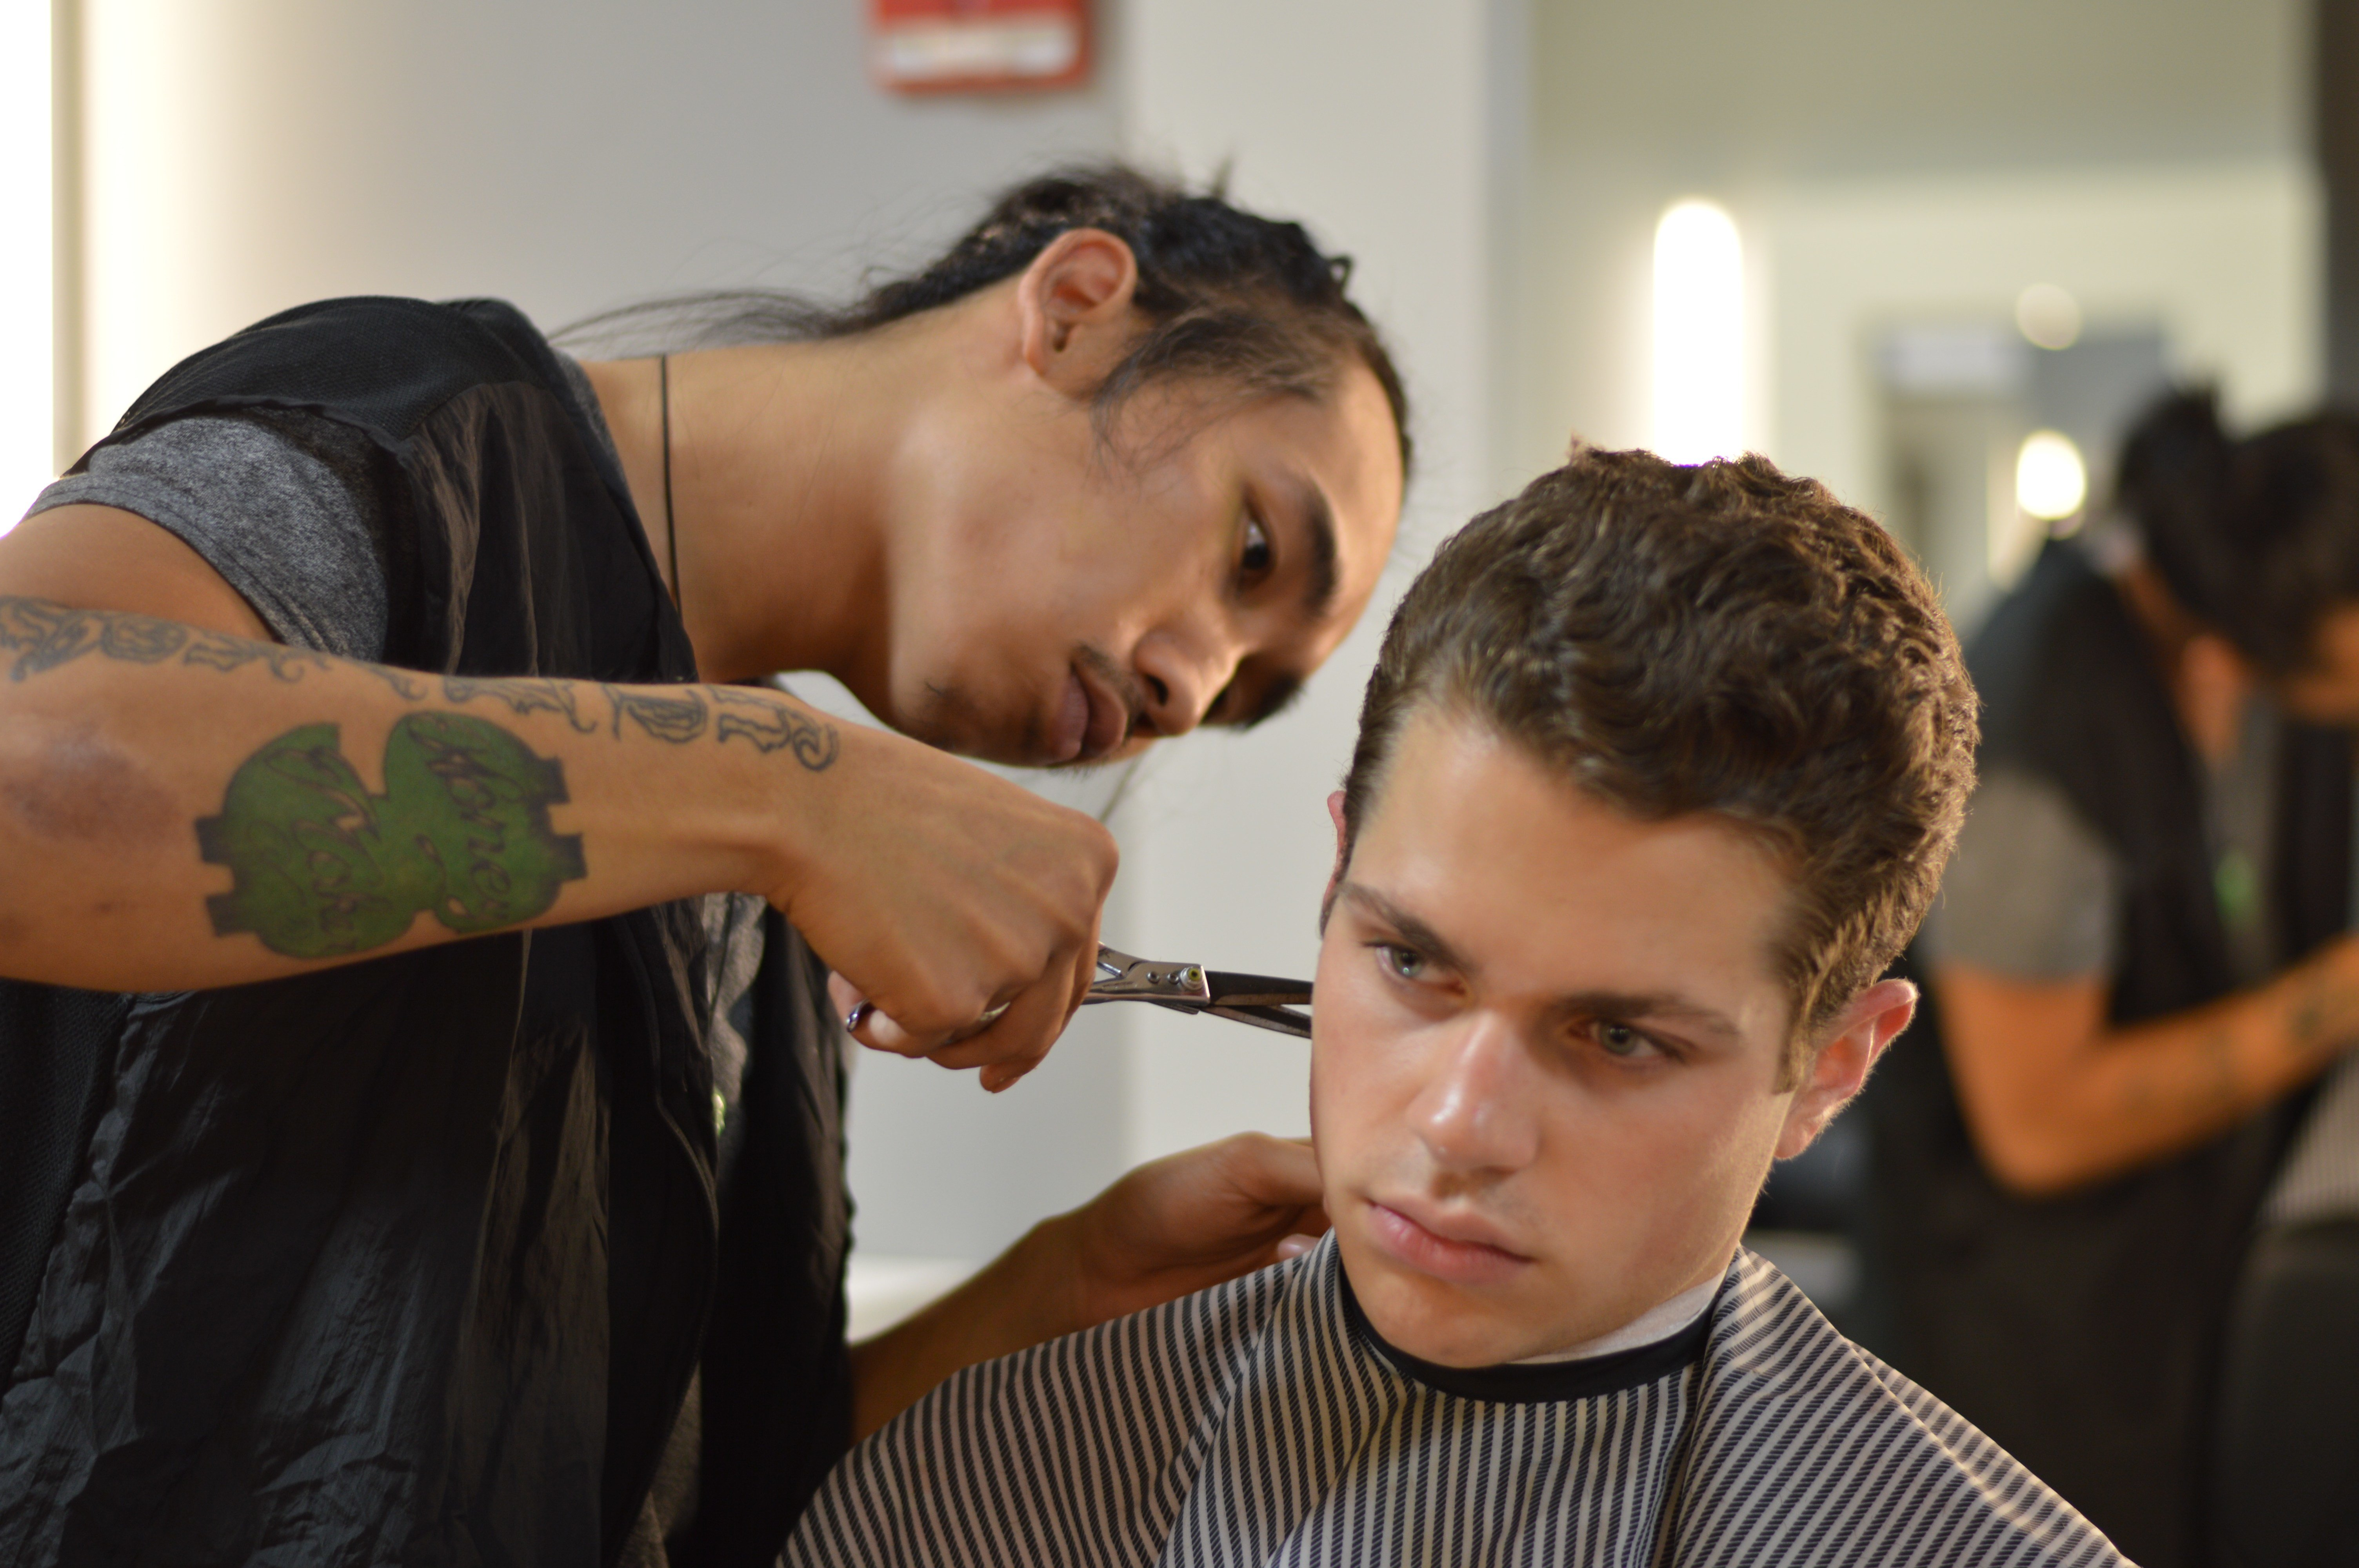 New Haircut Royal Razor Barbershop Baltimore Ideas With Pictures Original 1024 x 768